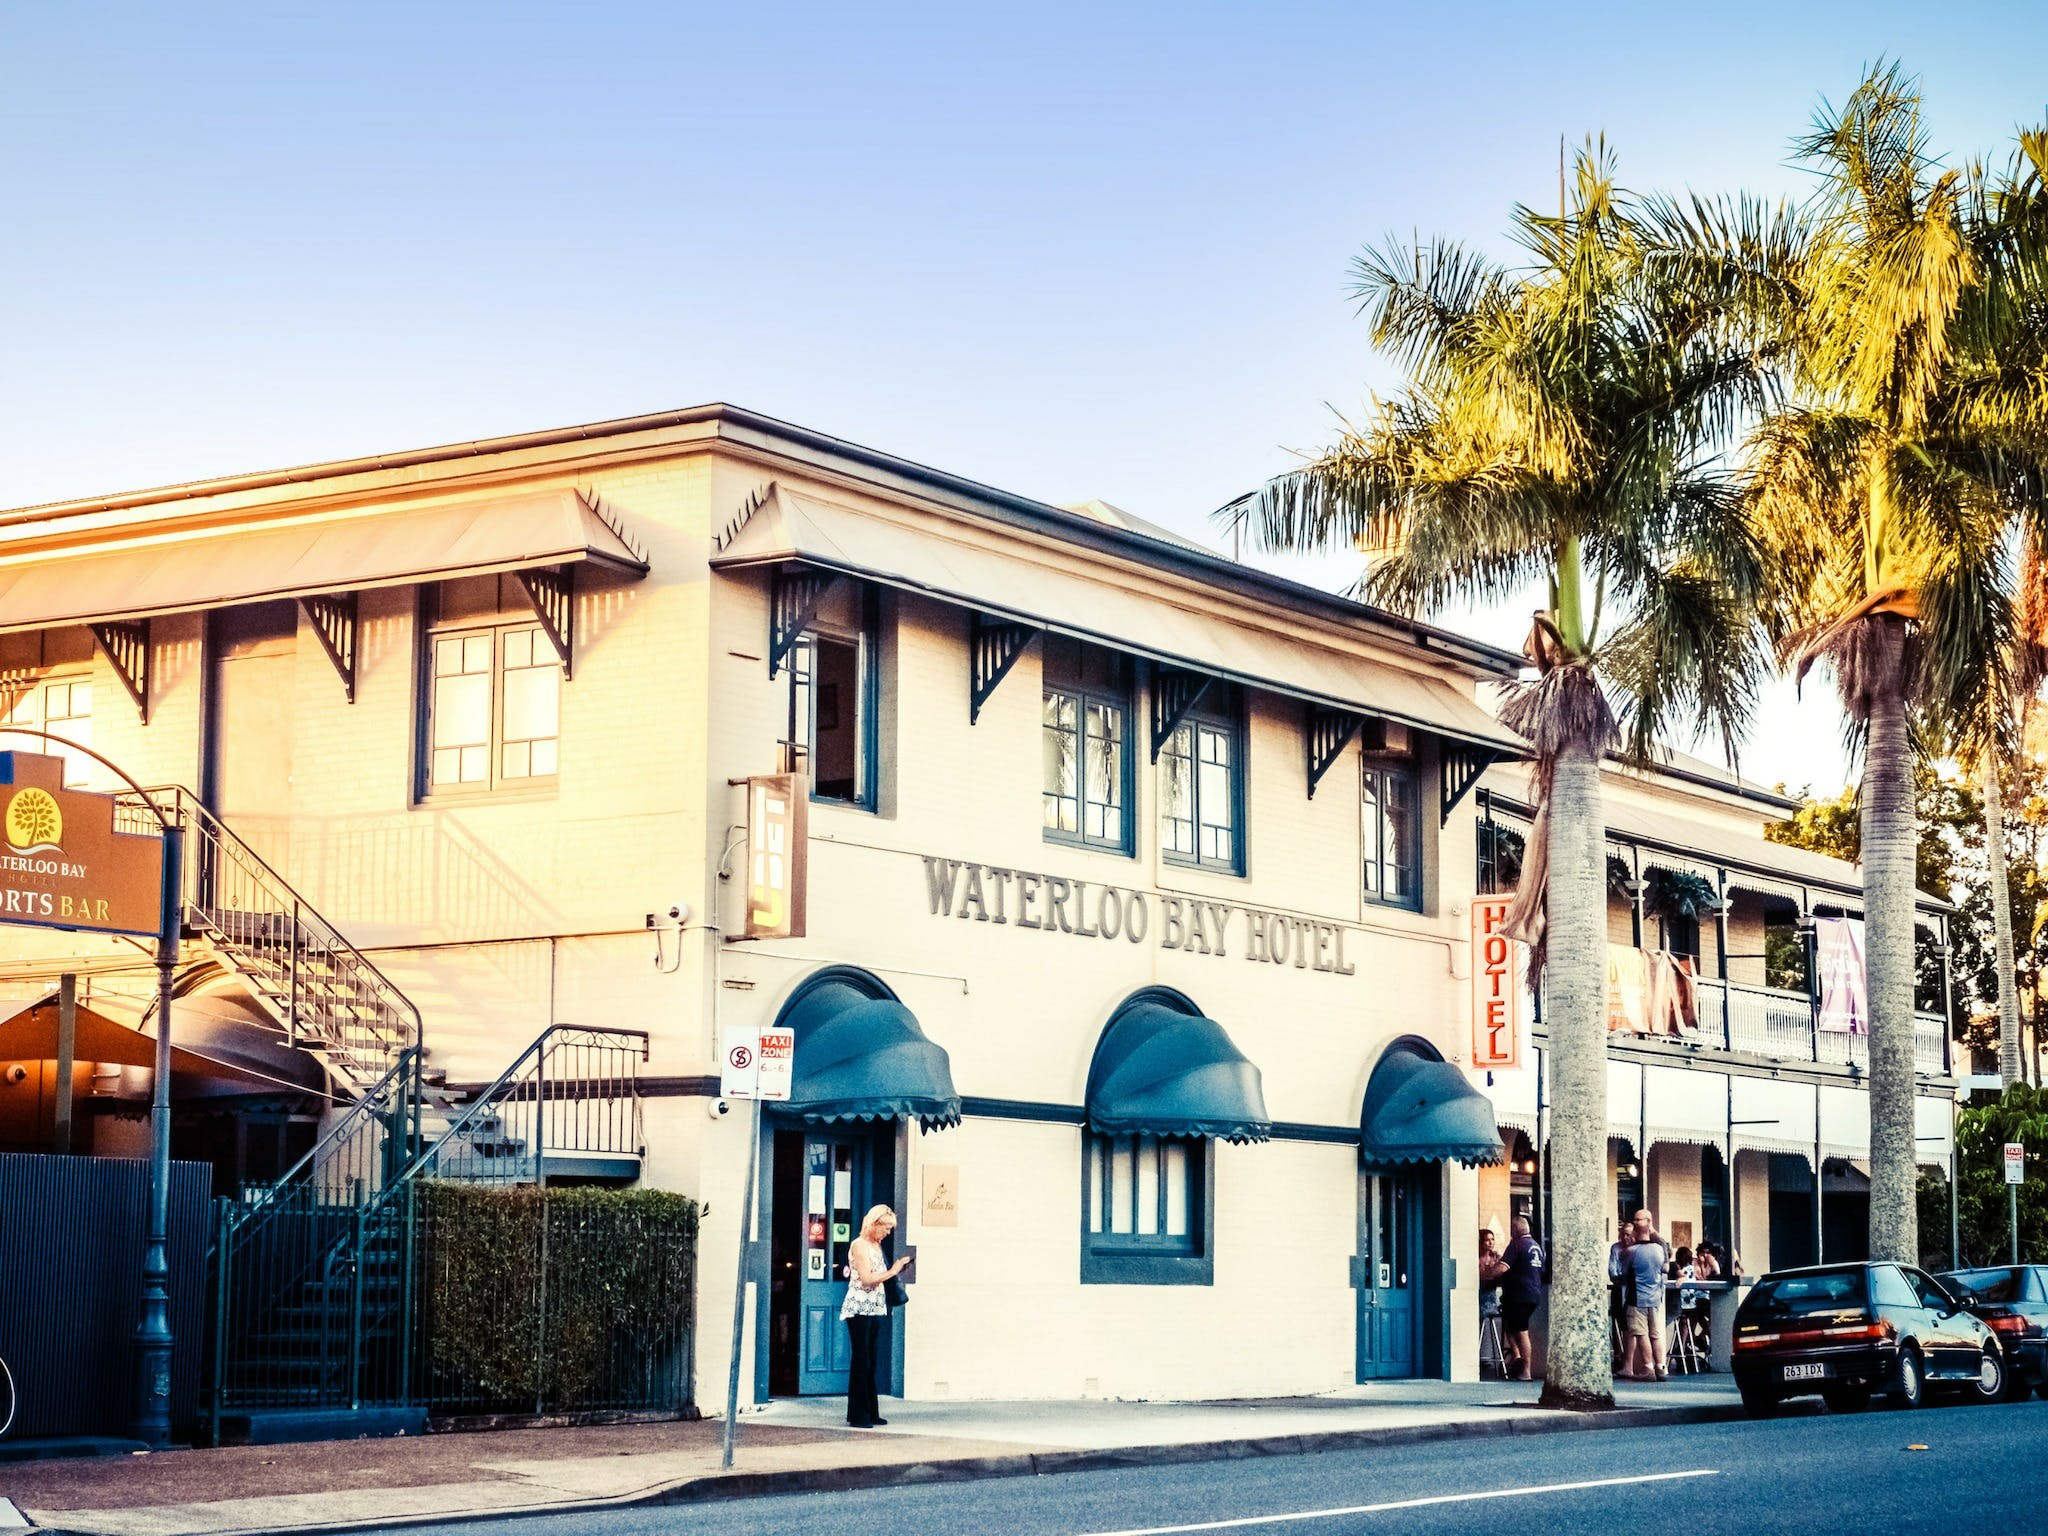 The Waterloo Bay Hotel - Whitsundays Tourism